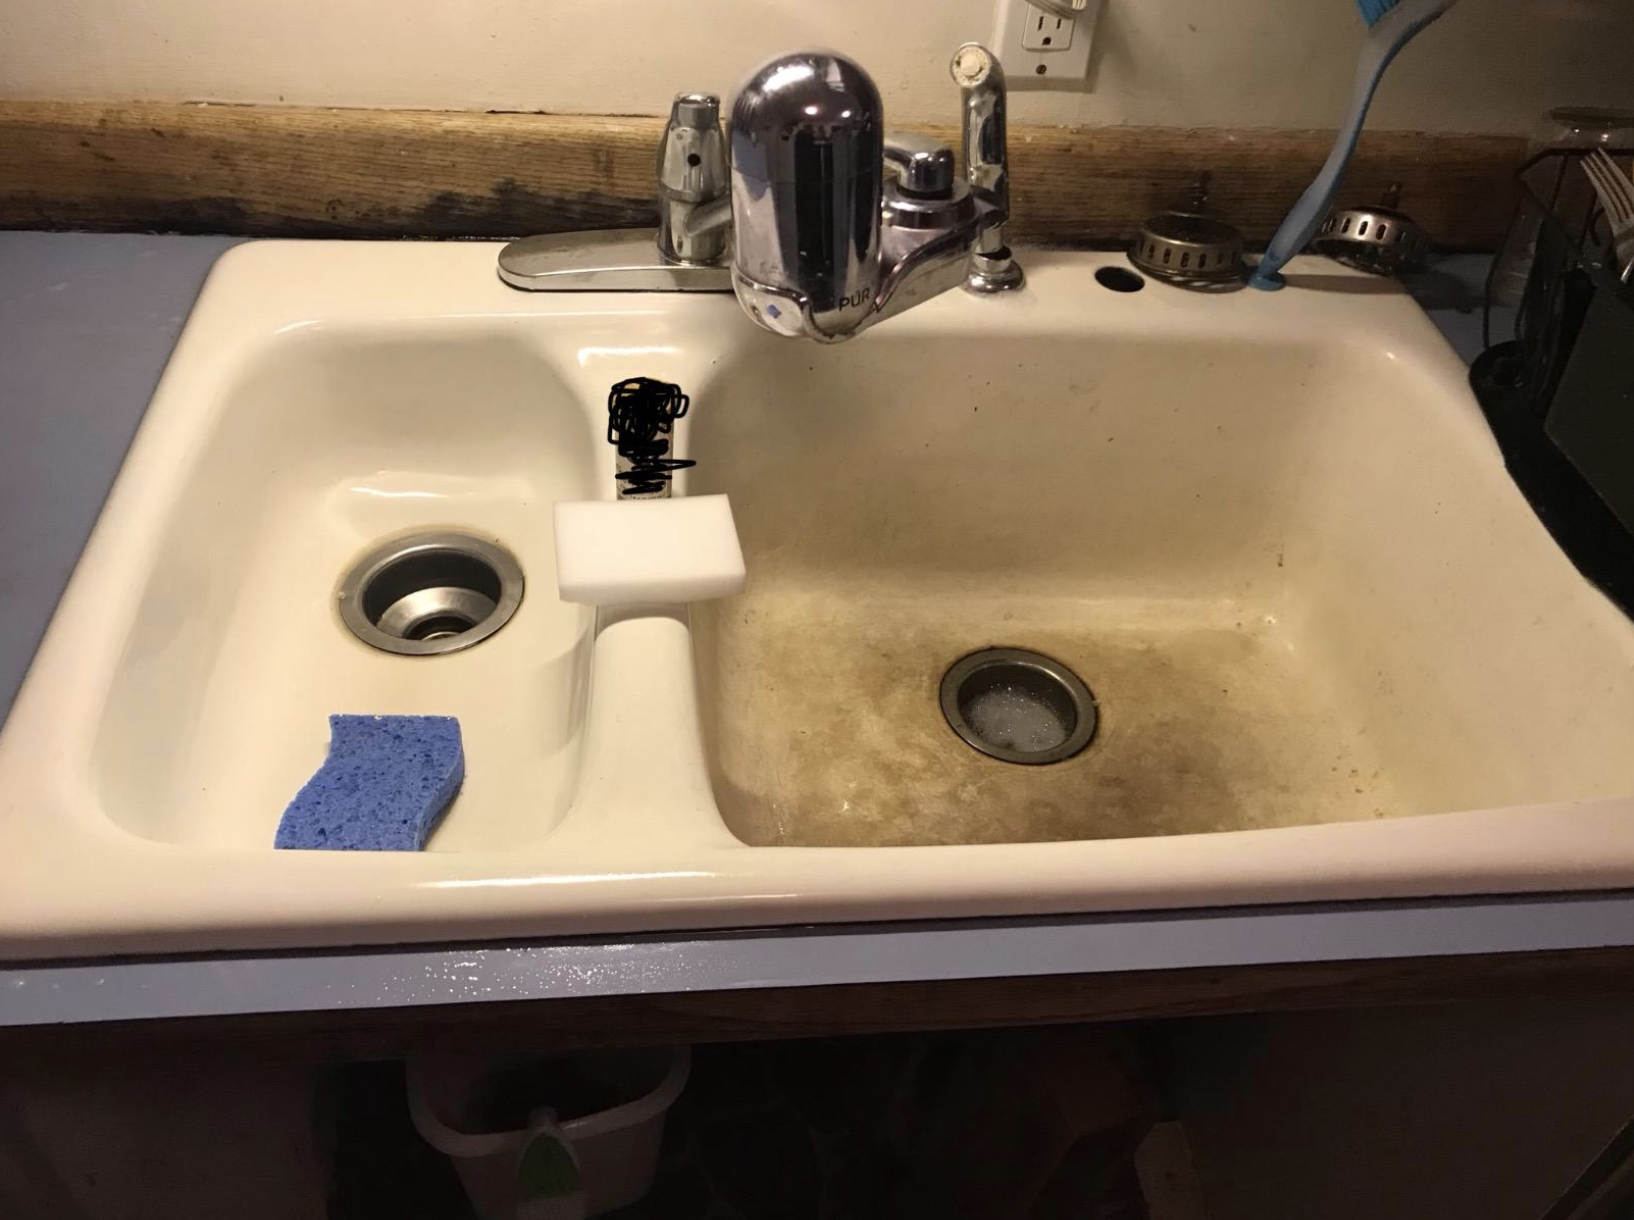 before/after showing reviewer's sink with tons of dark stains and then without after using sponges